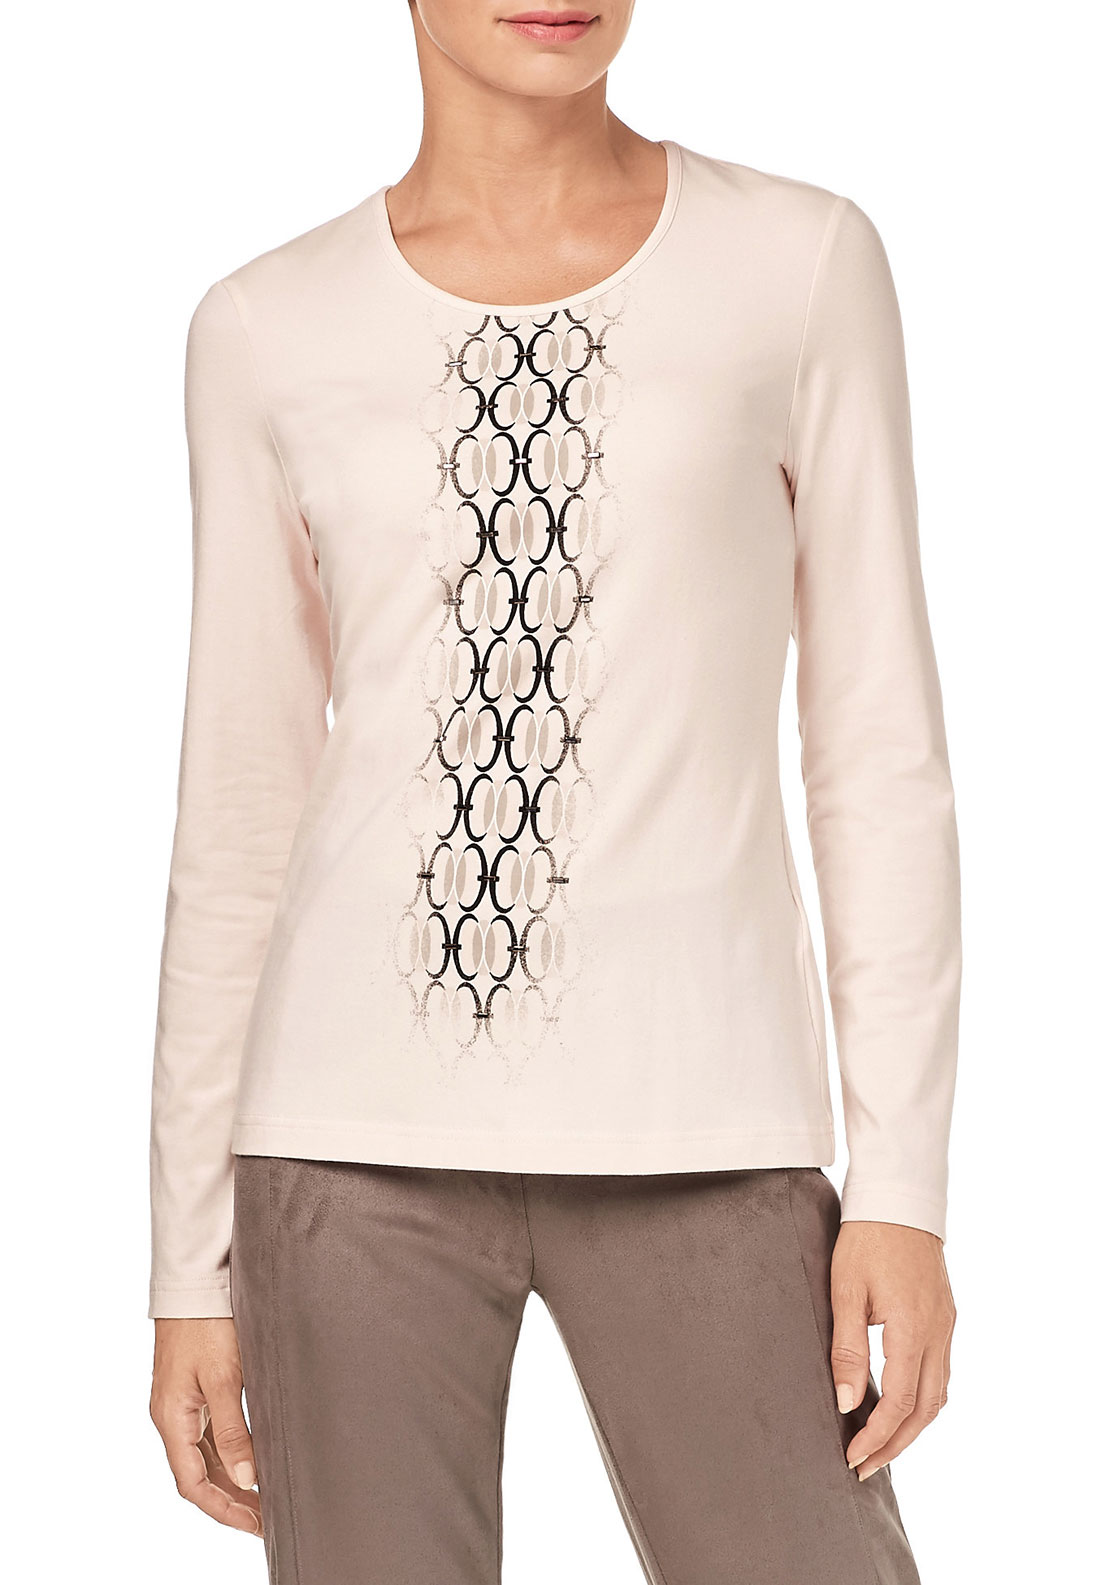 Gerry Weber Circle Print Top, Pink